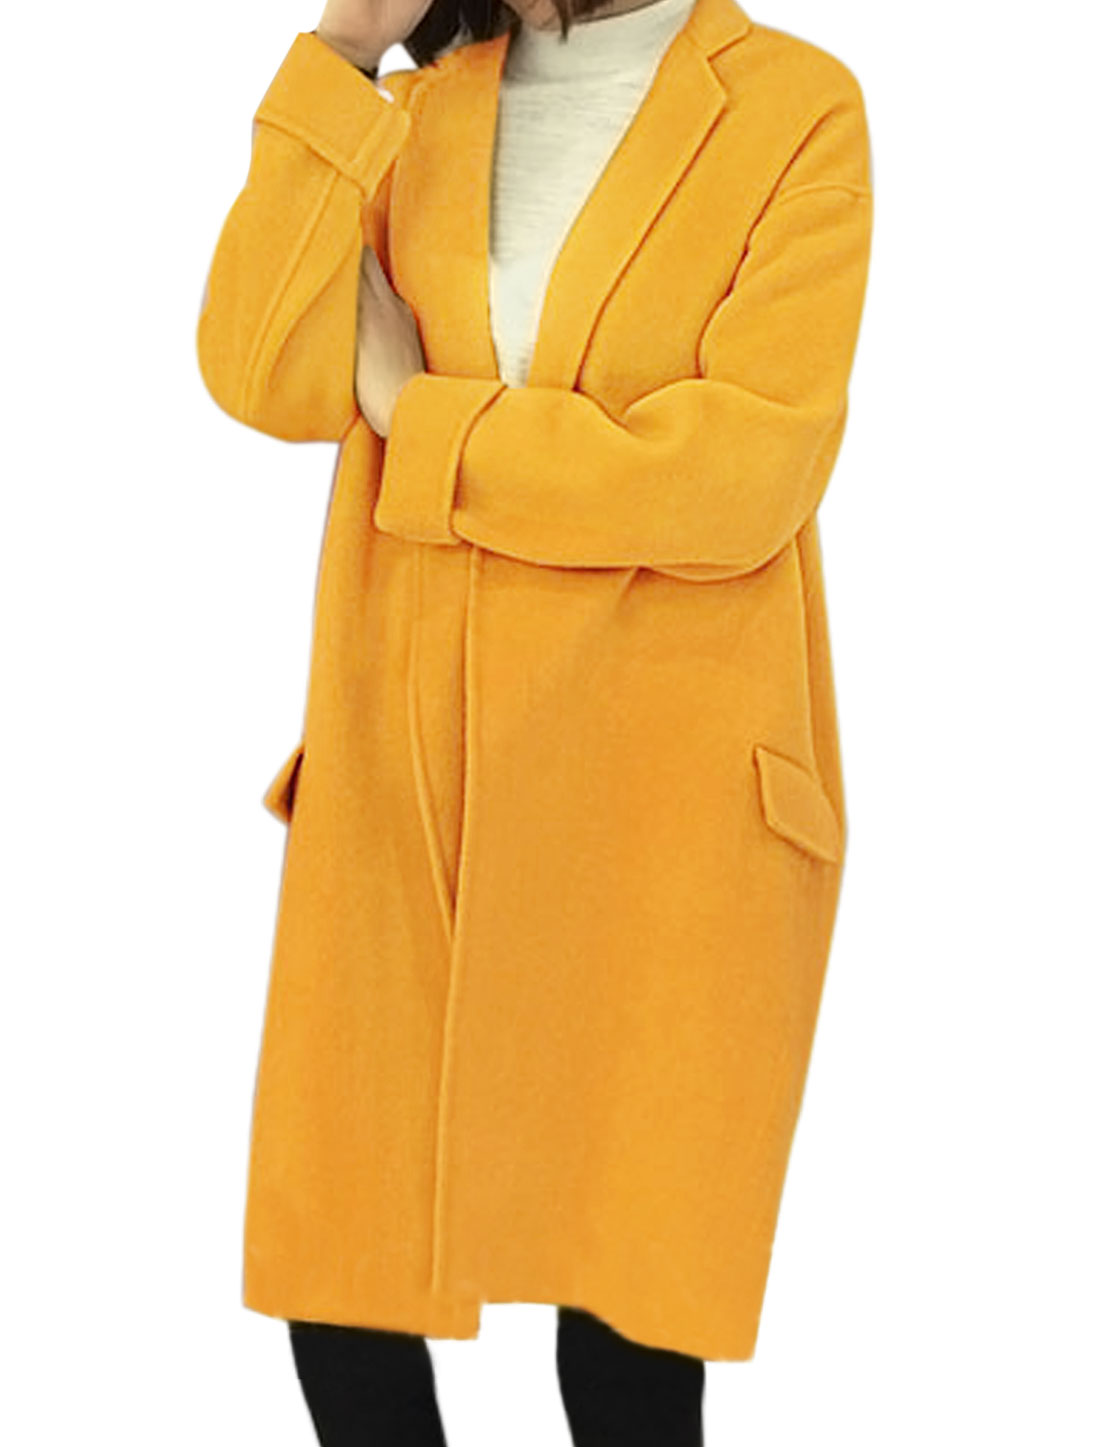 Lady Collared Open Front Tunic Worsted Coat Yellow XS